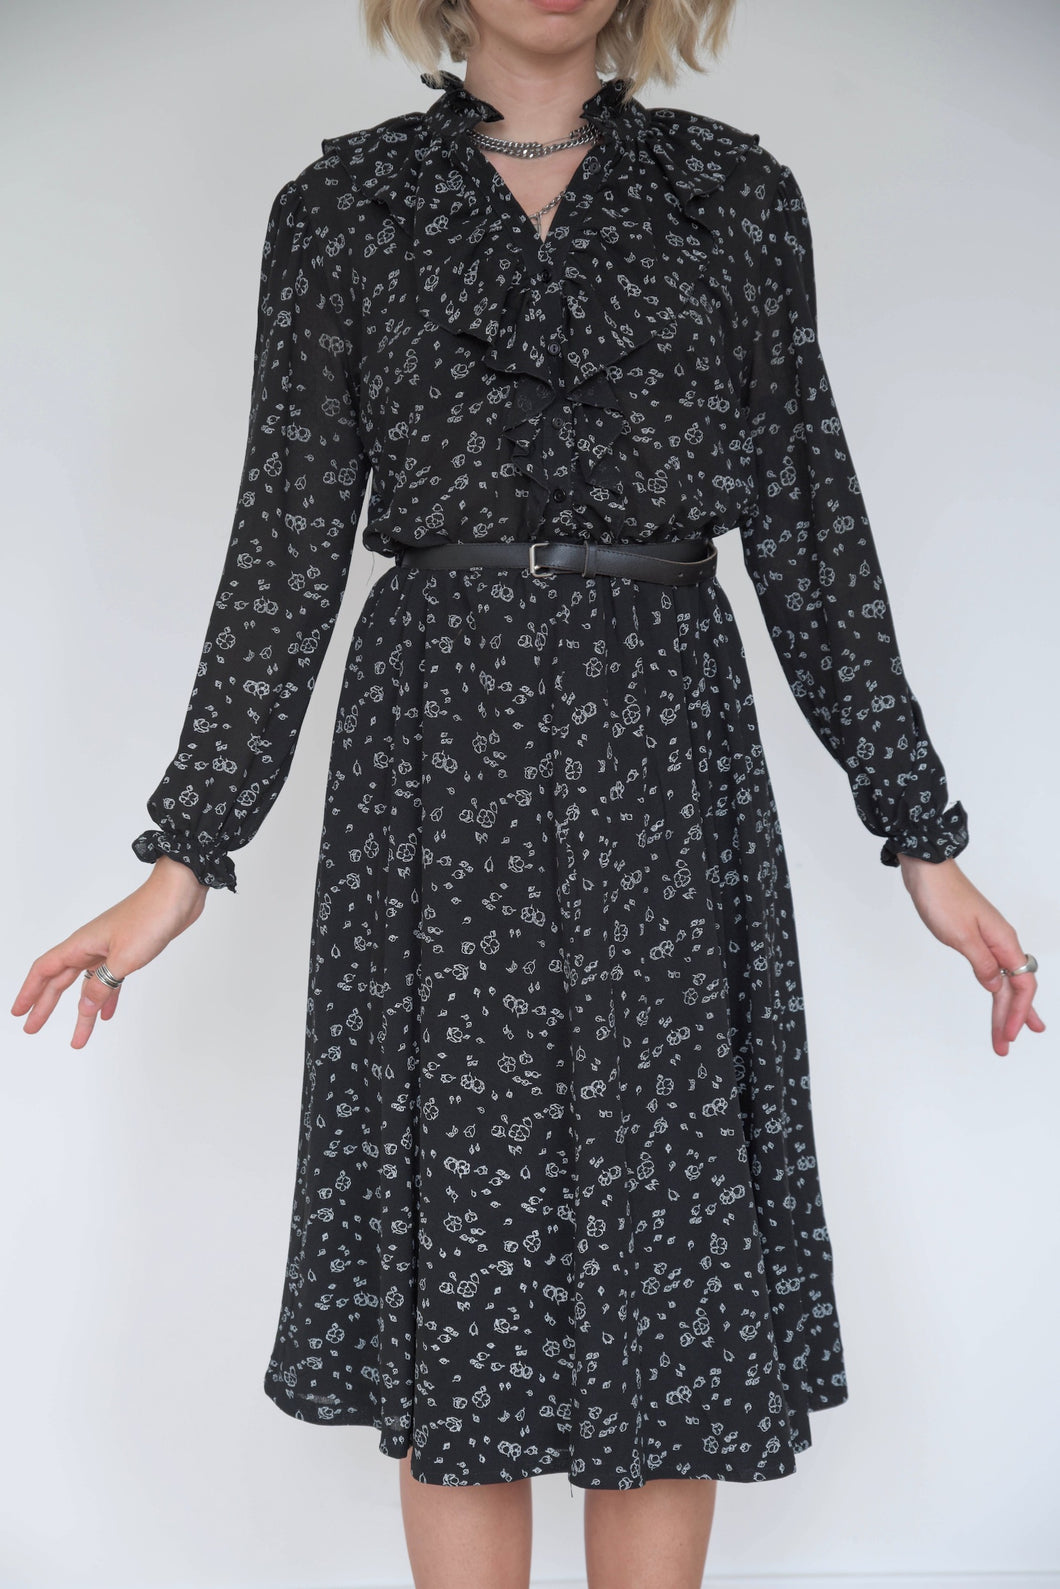 Vintage 70s Dress Midi in Black with Tiny White Flowers in S